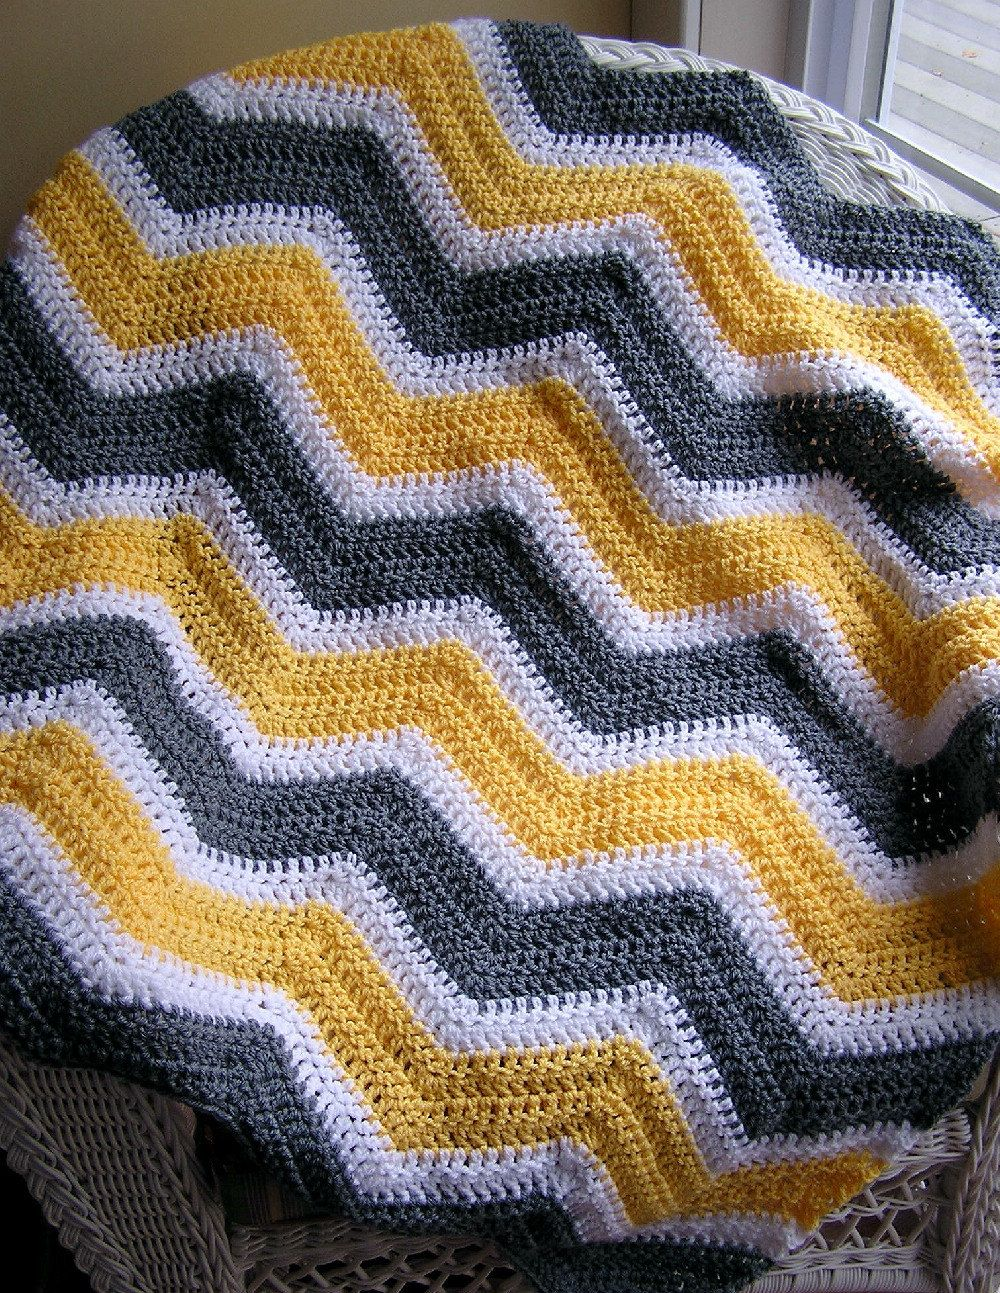 New chevron zig zag baby blanket afghan wrap crochet knit lap robe chevron zig zag baby blanket afghan wrap crochet knit lap robe wheelchair ripple stripes vanna white bankloansurffo Image collections